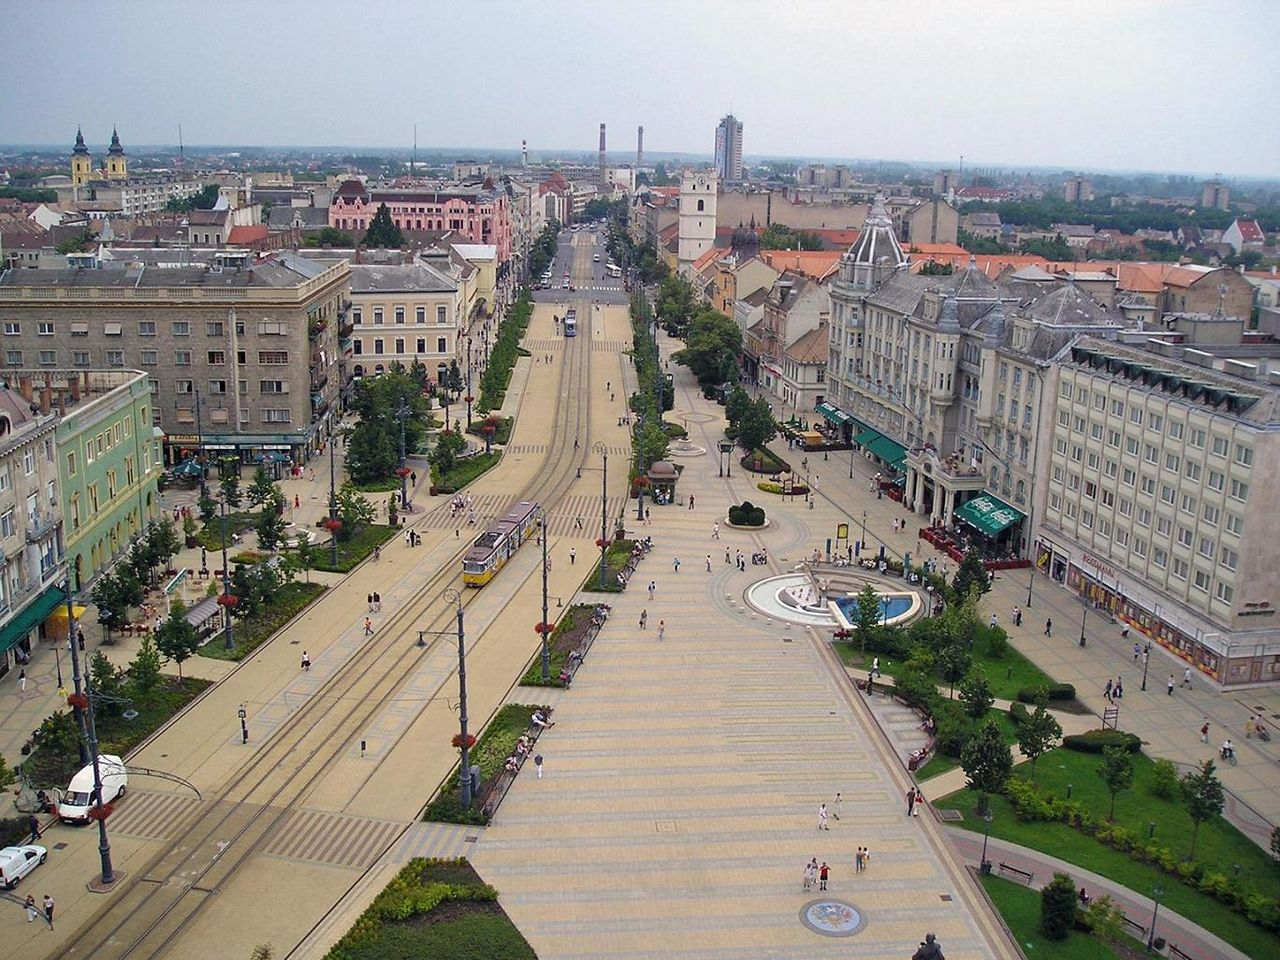 debrecen dating Join local hungary chat rooms and chat with local hungarians.